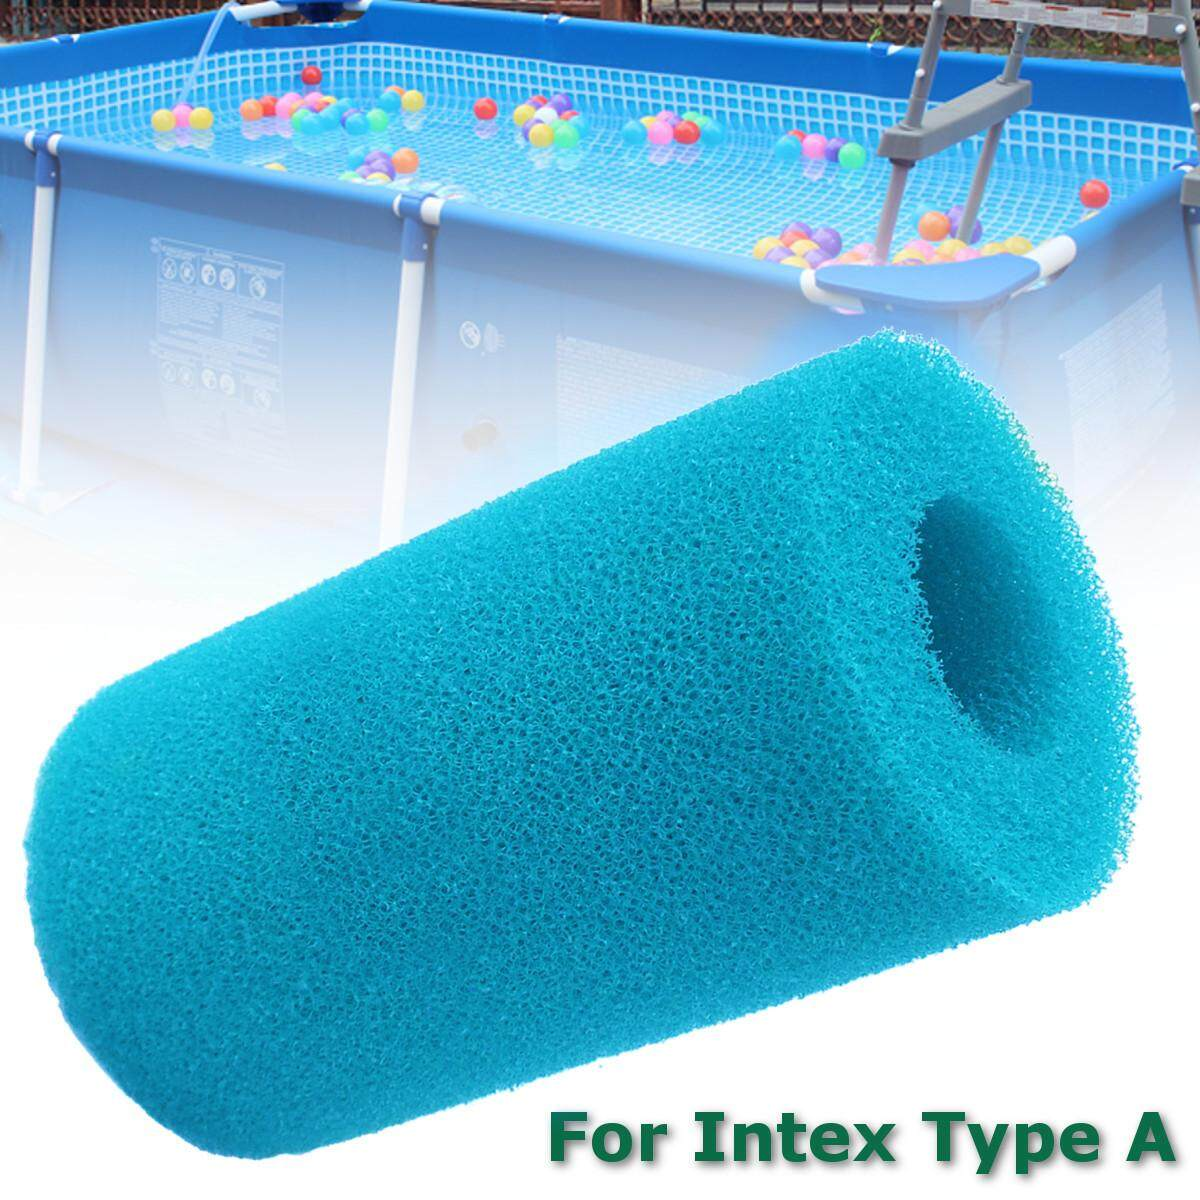 Intex Type A Reusable/washable Swimming Pool Filter Foam Cartridge By Moonbeam.